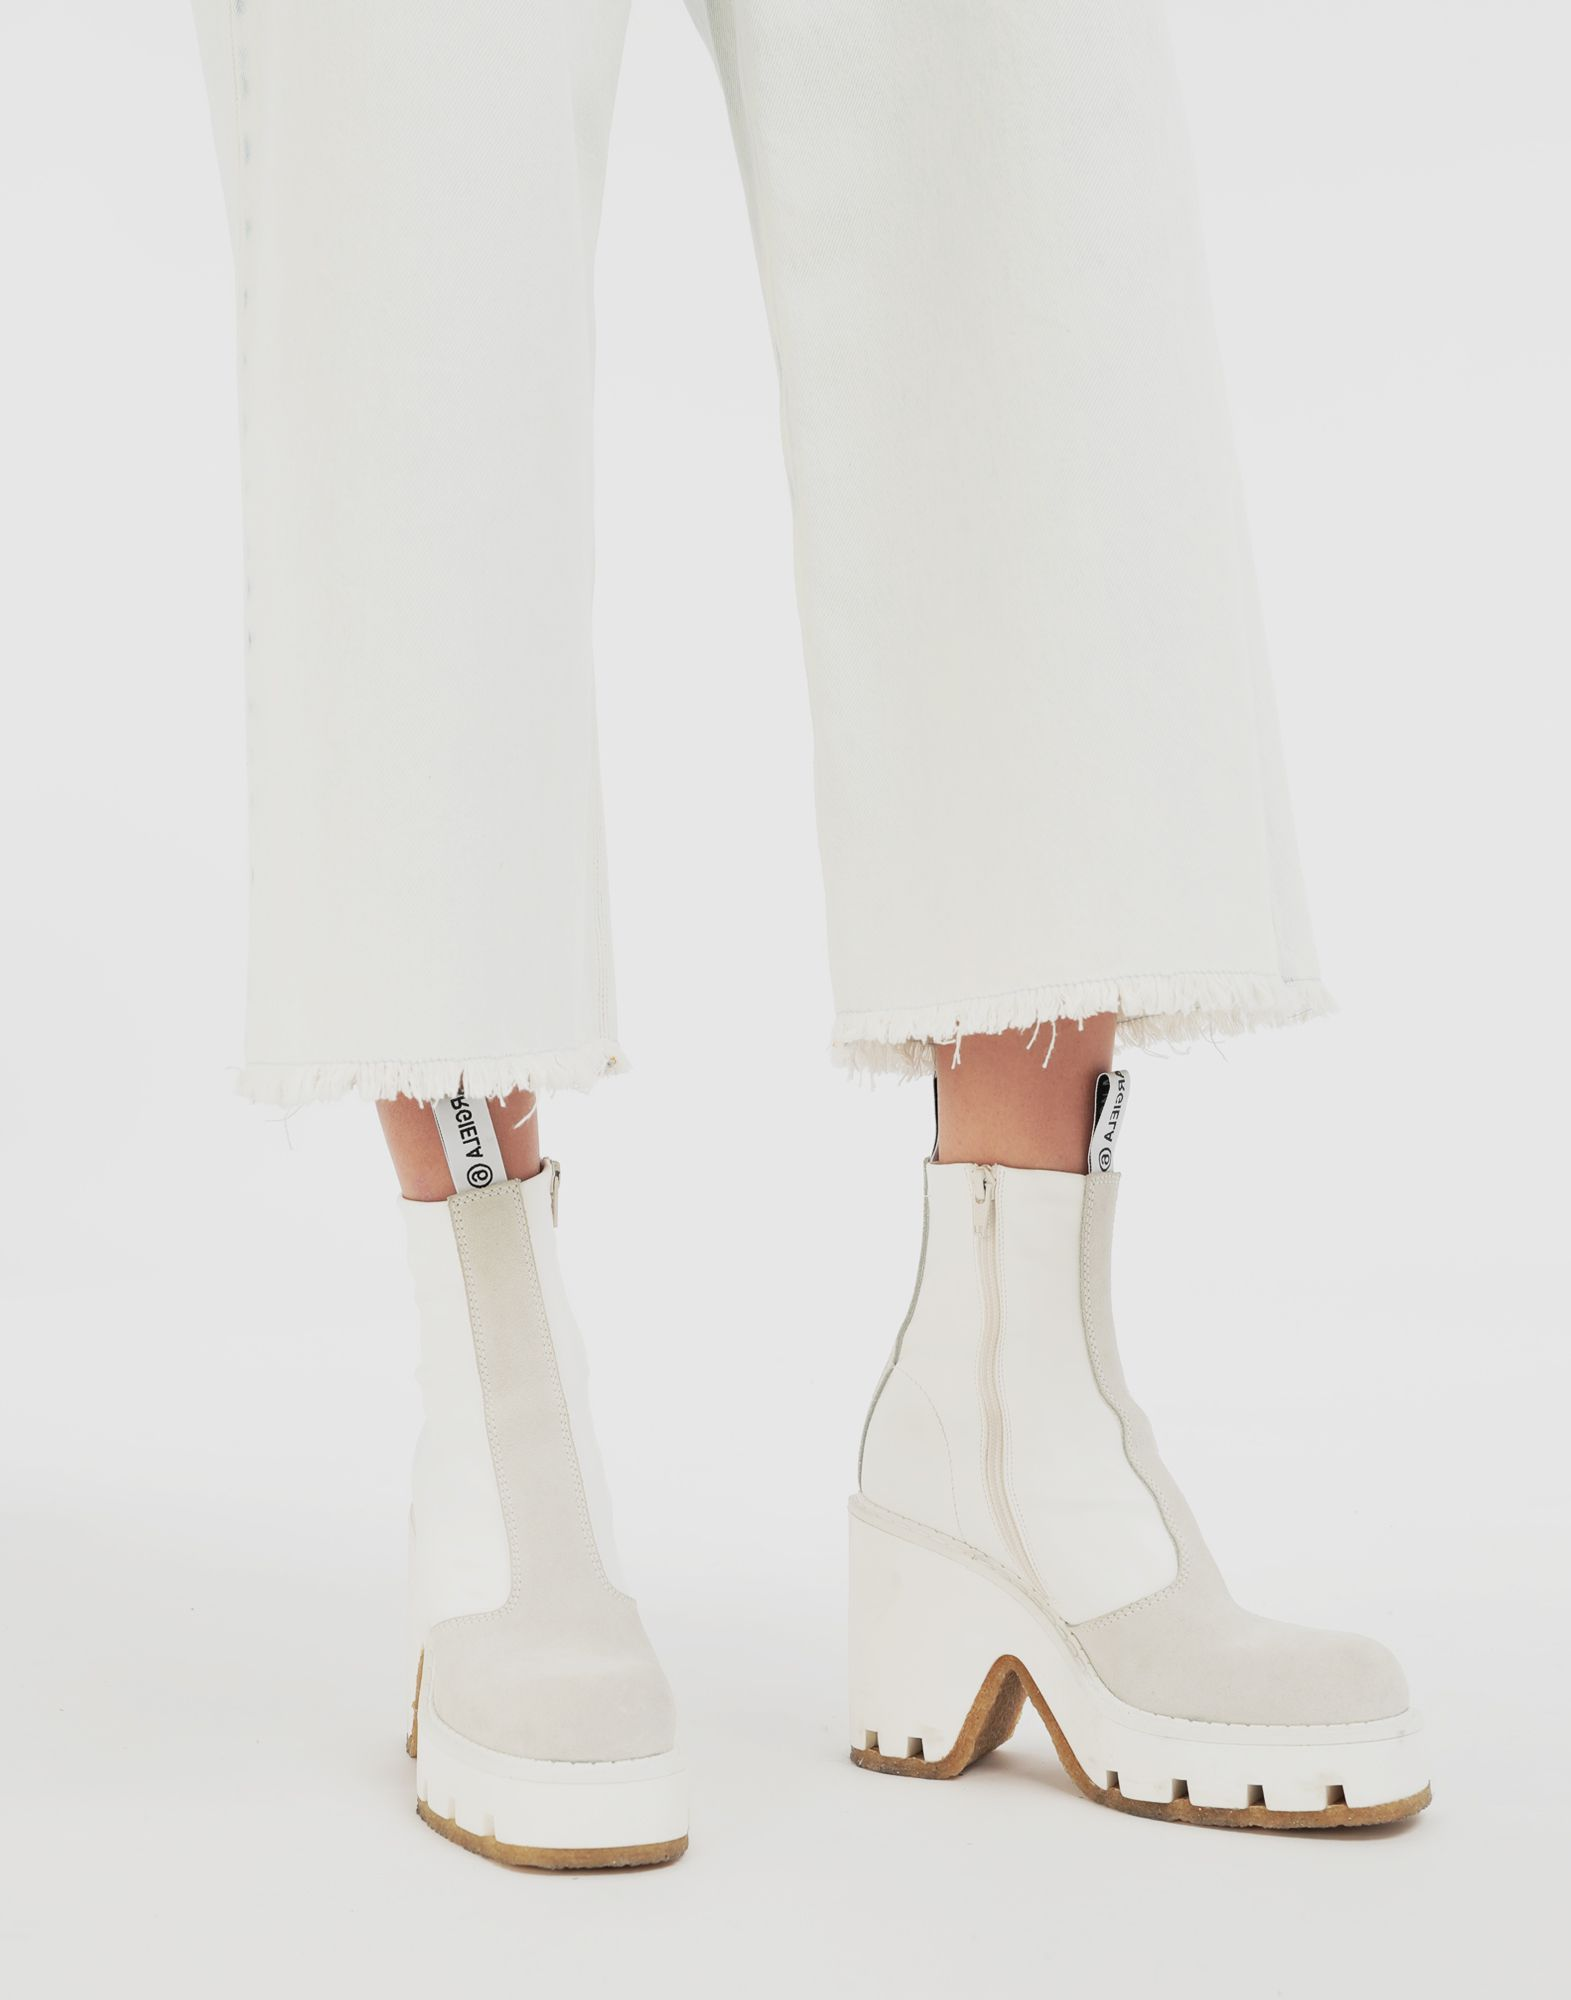 MM6 MAISON MARGIELA Textured ankle boots Ankle boots Woman r